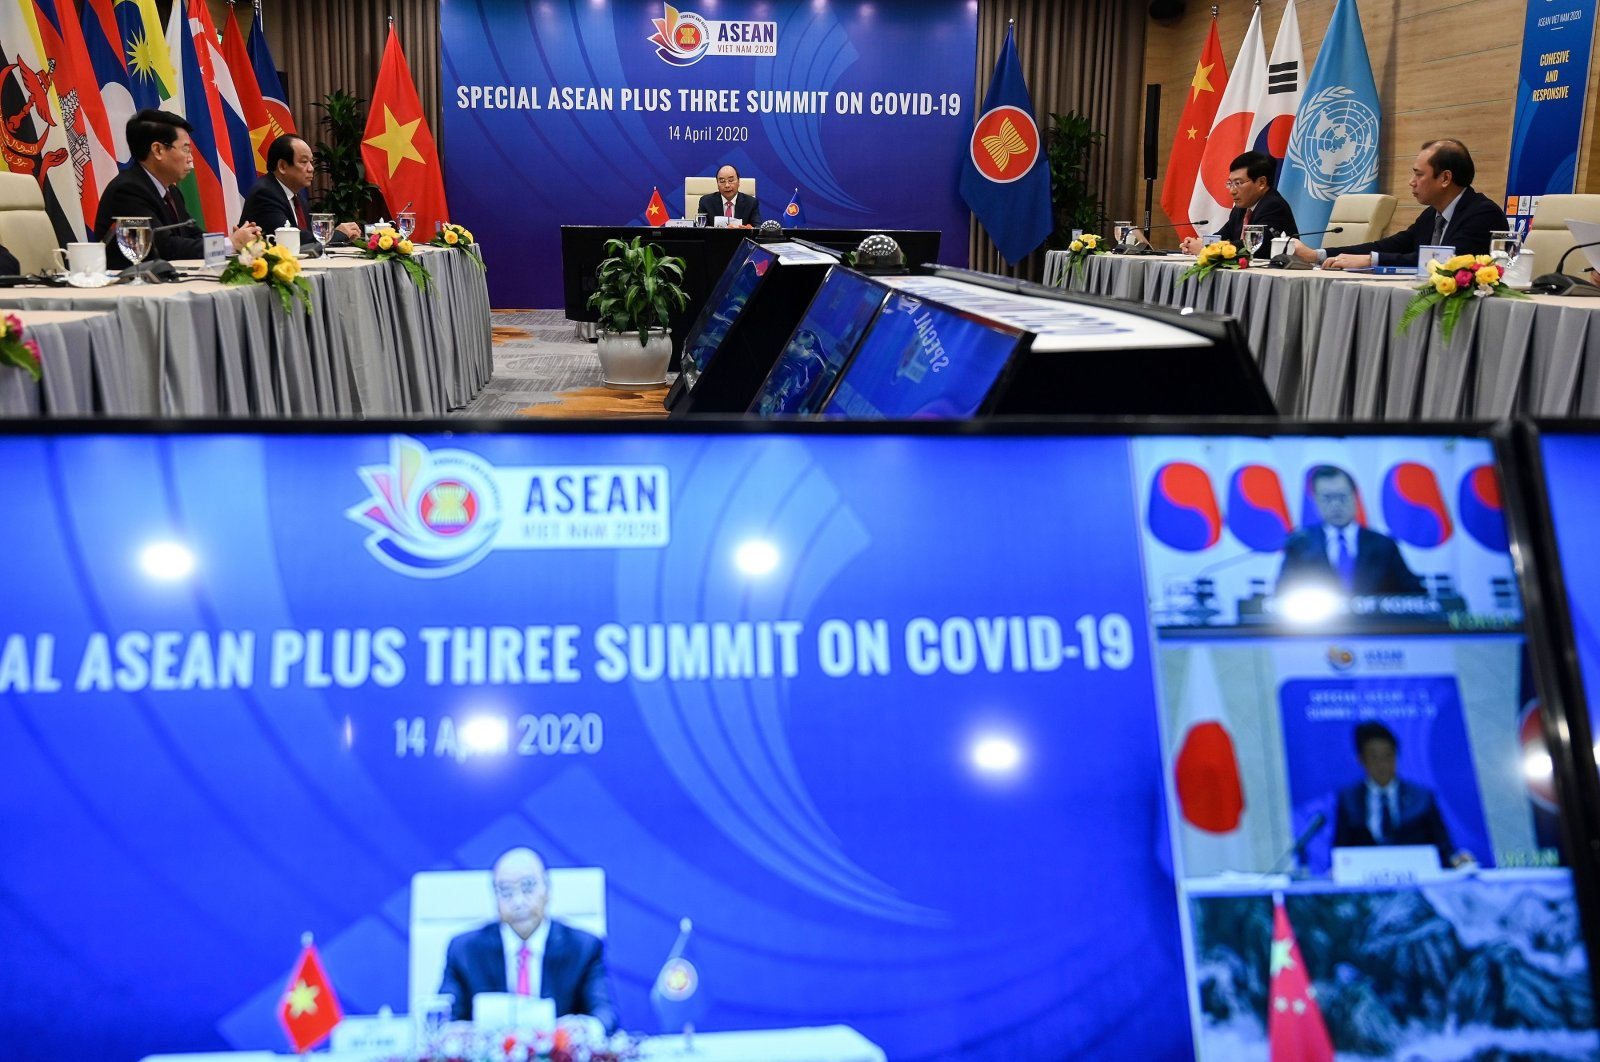 Vietnam's Prime Minister Nguyen Xuan Phuc (C) addresses a live videoconference on the special Association of Southeast Asian Nations (ASEAN) Plus Three Summit on the coronavirus pandemic in Hanoi as South Korea's President Moon Jae-in, Japan's Prime Minister Shinzo Abe and China's Premier Li Keqiang are seen on television screen, April 14, 2020 . (AFP Photo)